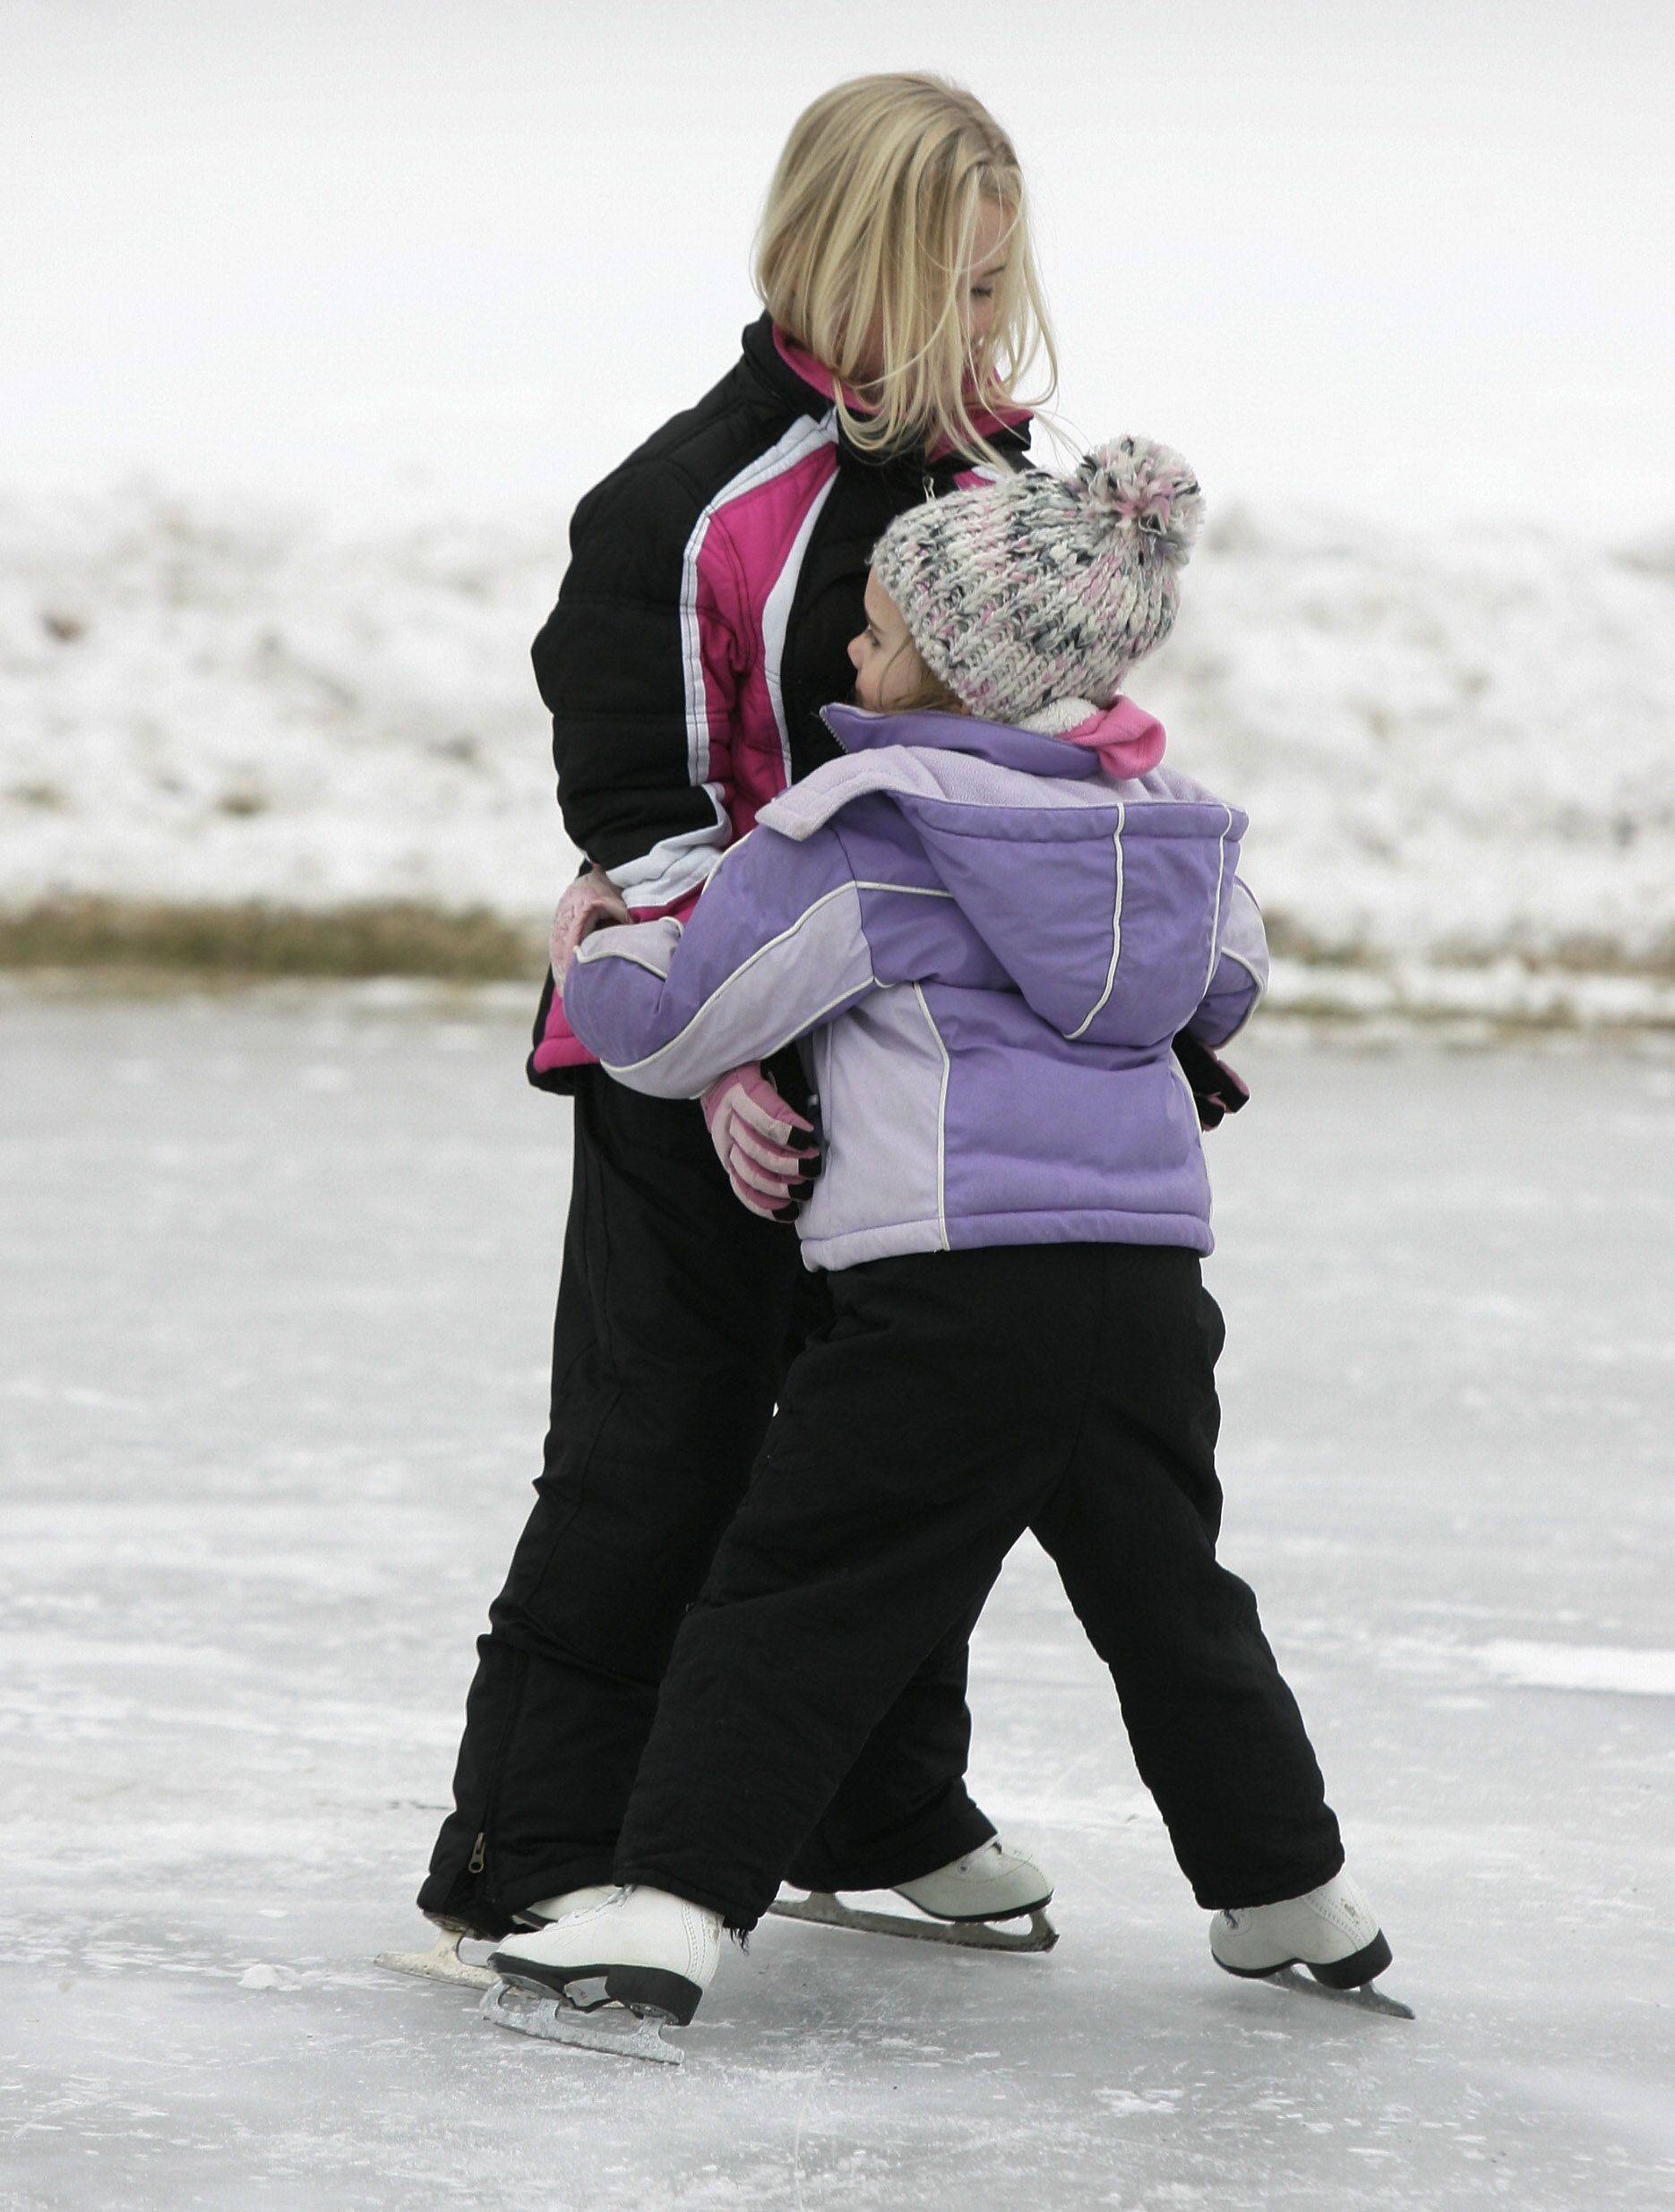 Paige Rankin, 8, of Libertyville helps her litle sister, Grace, 4, learn to ice skate at the ice rink in Nicholas-Dowden Park in Libertyville Tuesday.